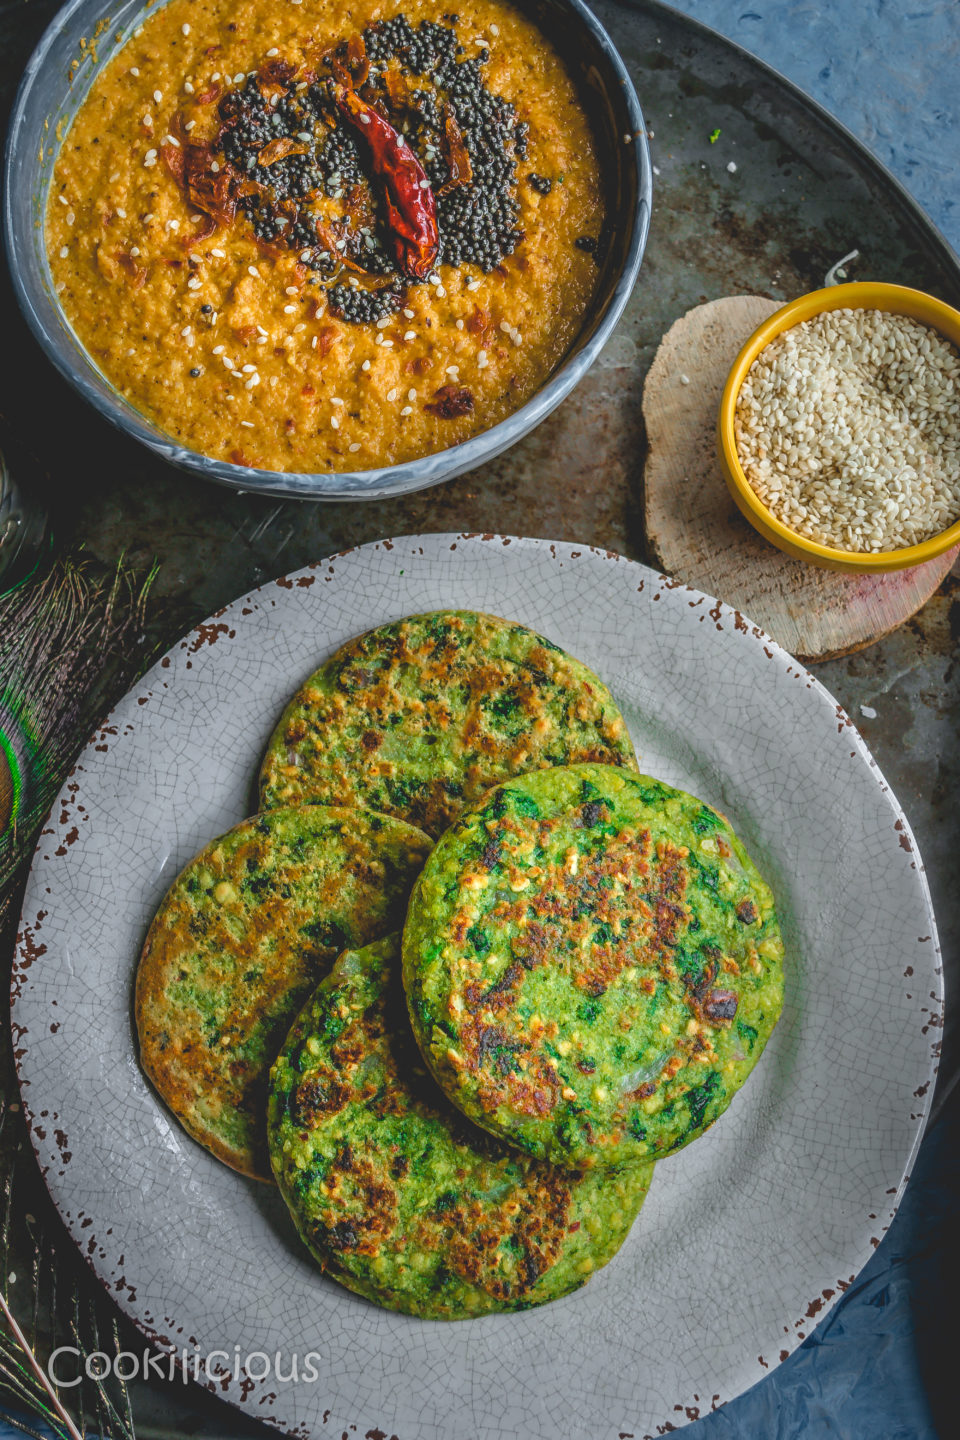 top shot of a plate filled with Kale Adai and orange chutney besides it